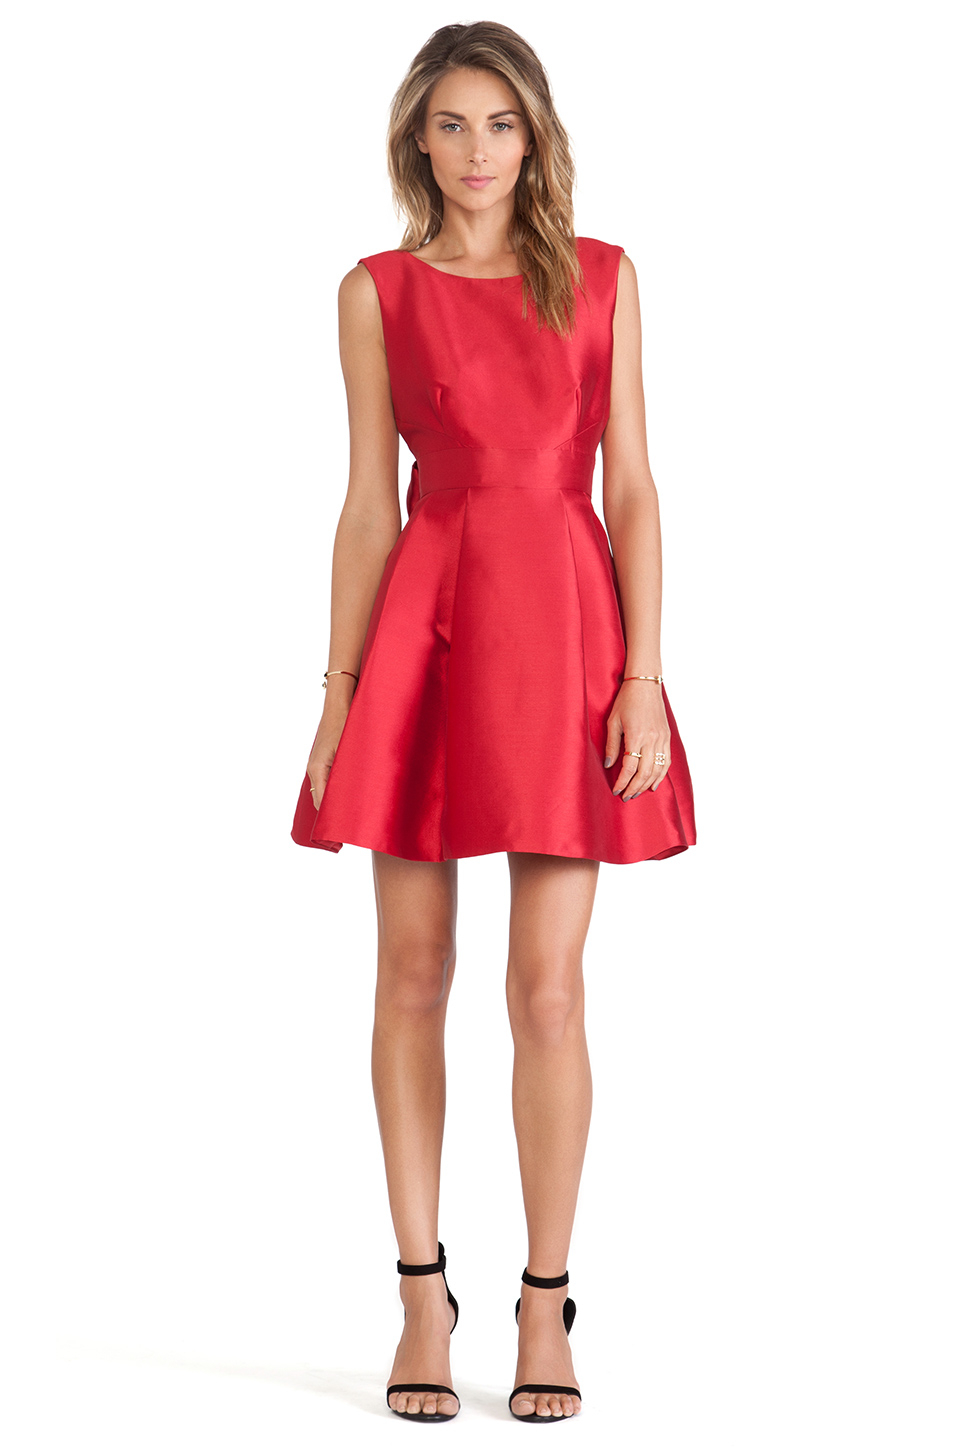 Kate Spade New York Backless Bow Mini Dress In Red Lyst